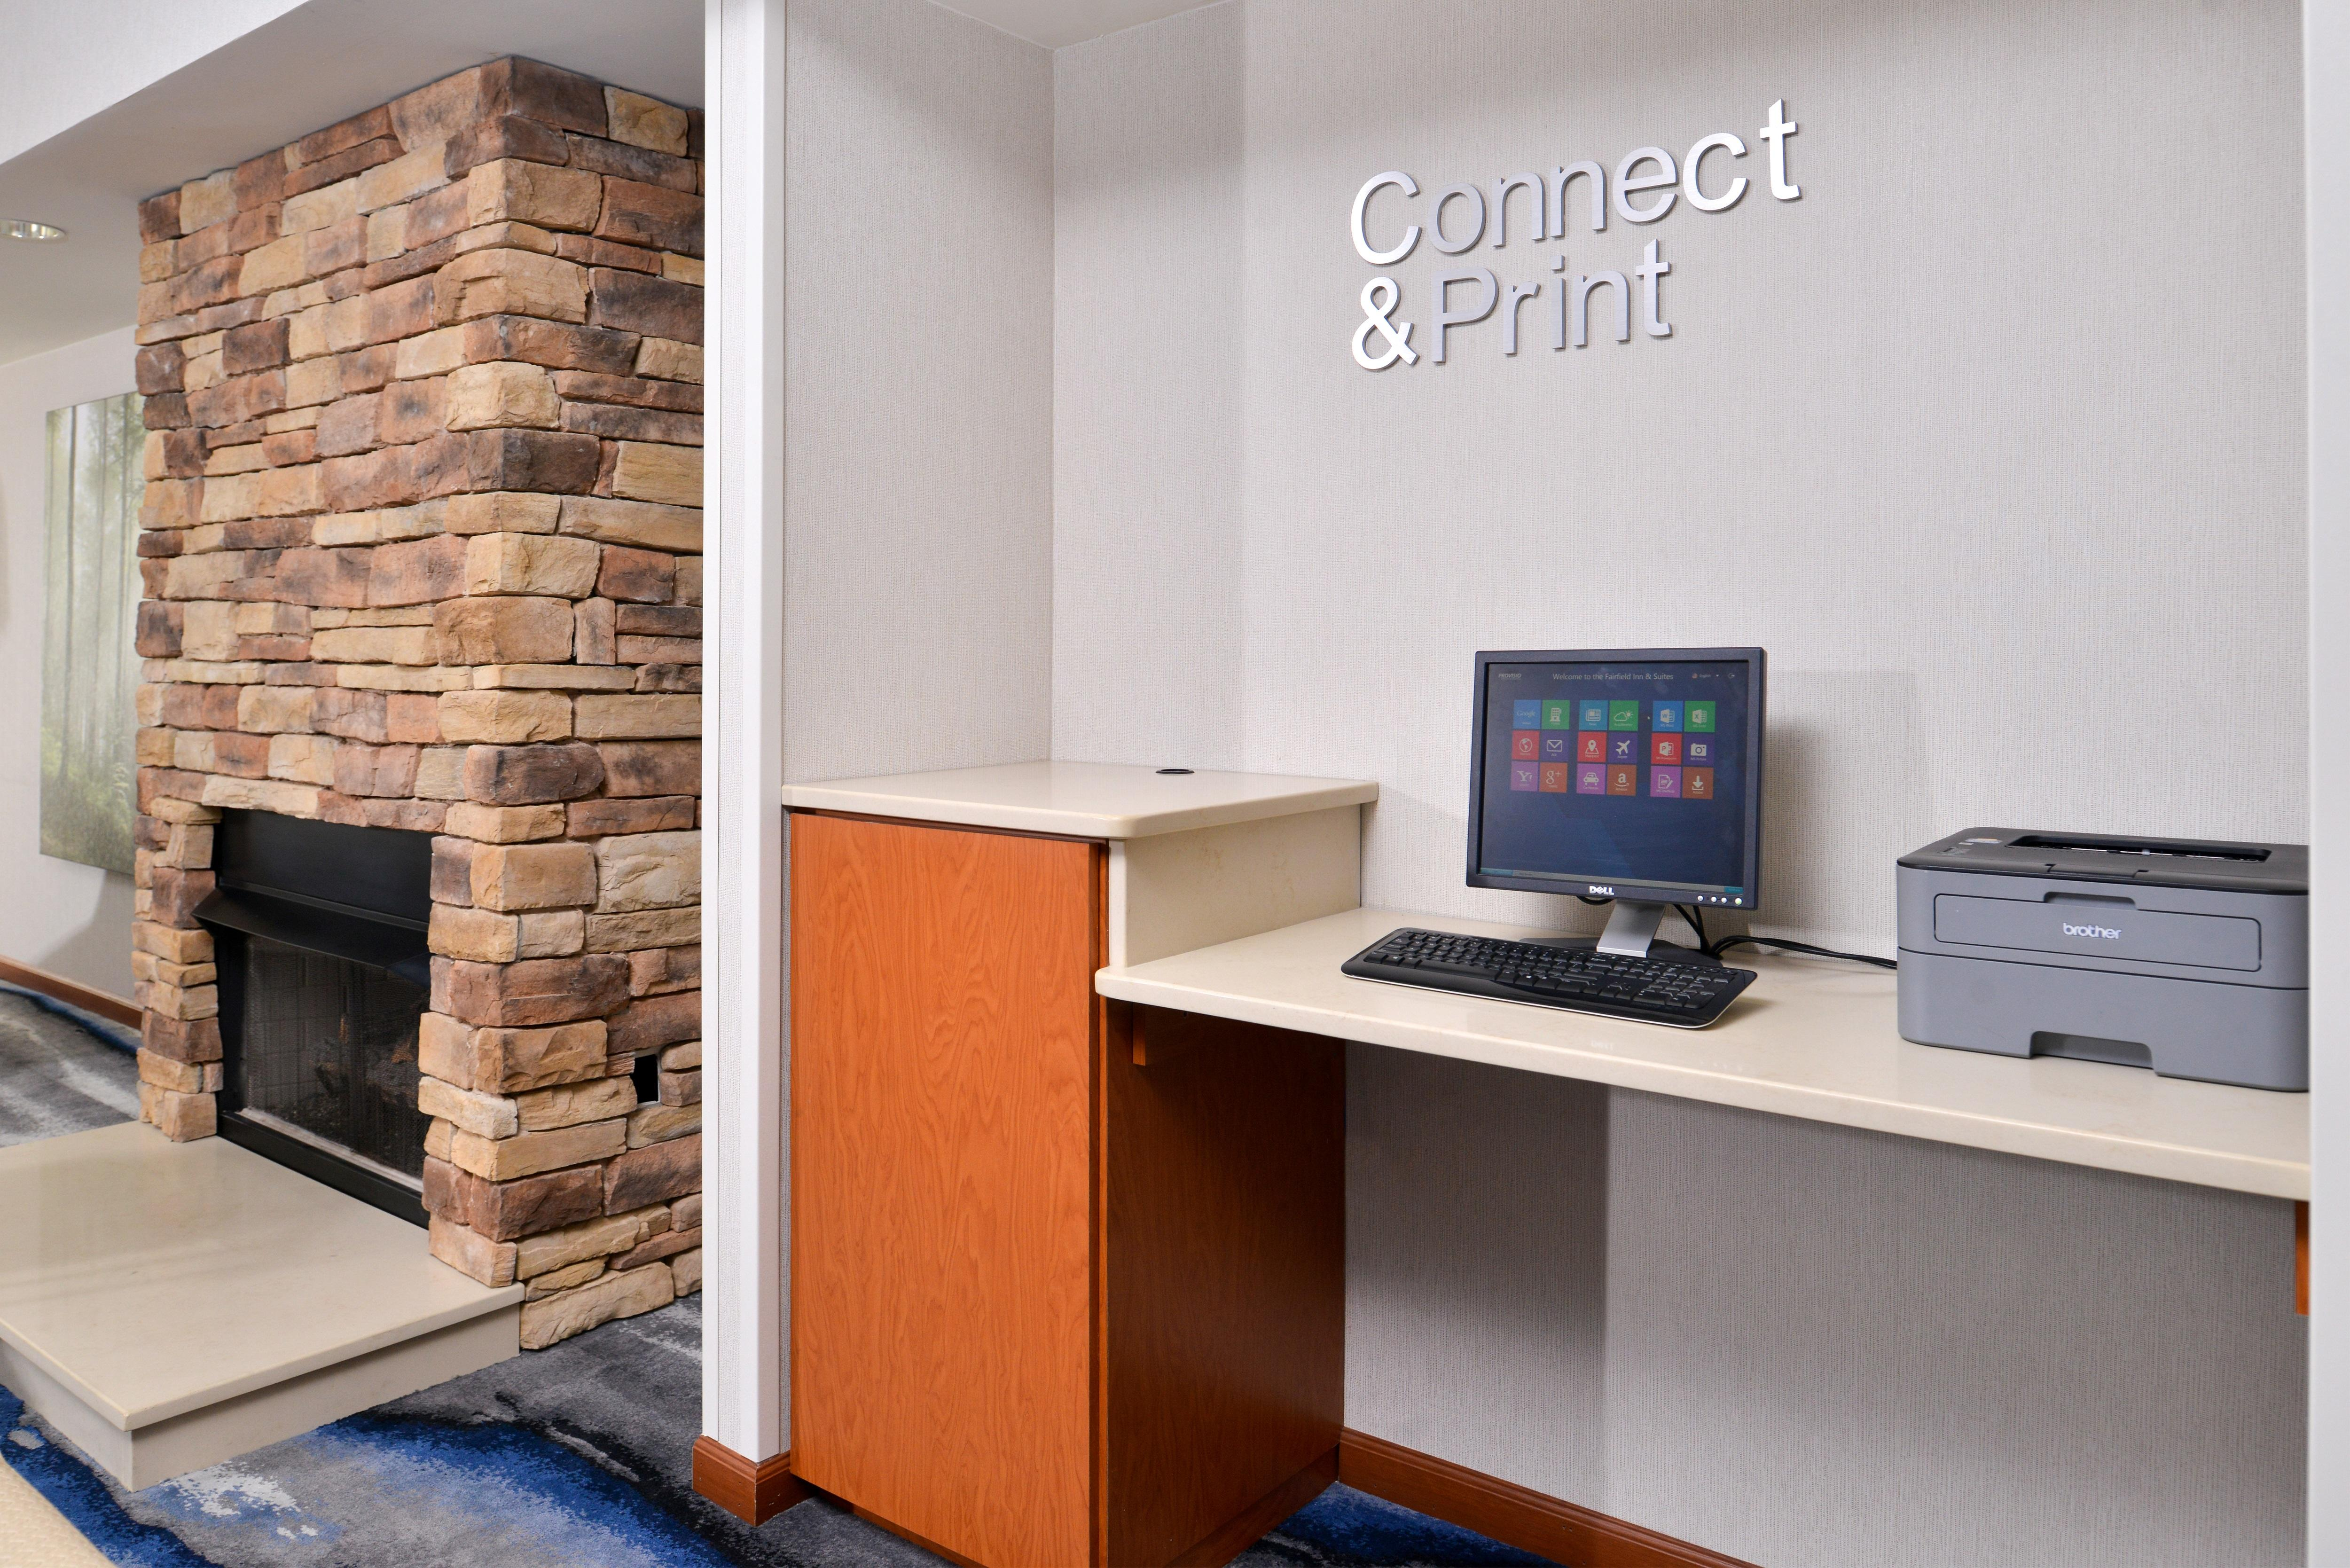 Fairfield Inn & Suites by Marriott Ocala image 9